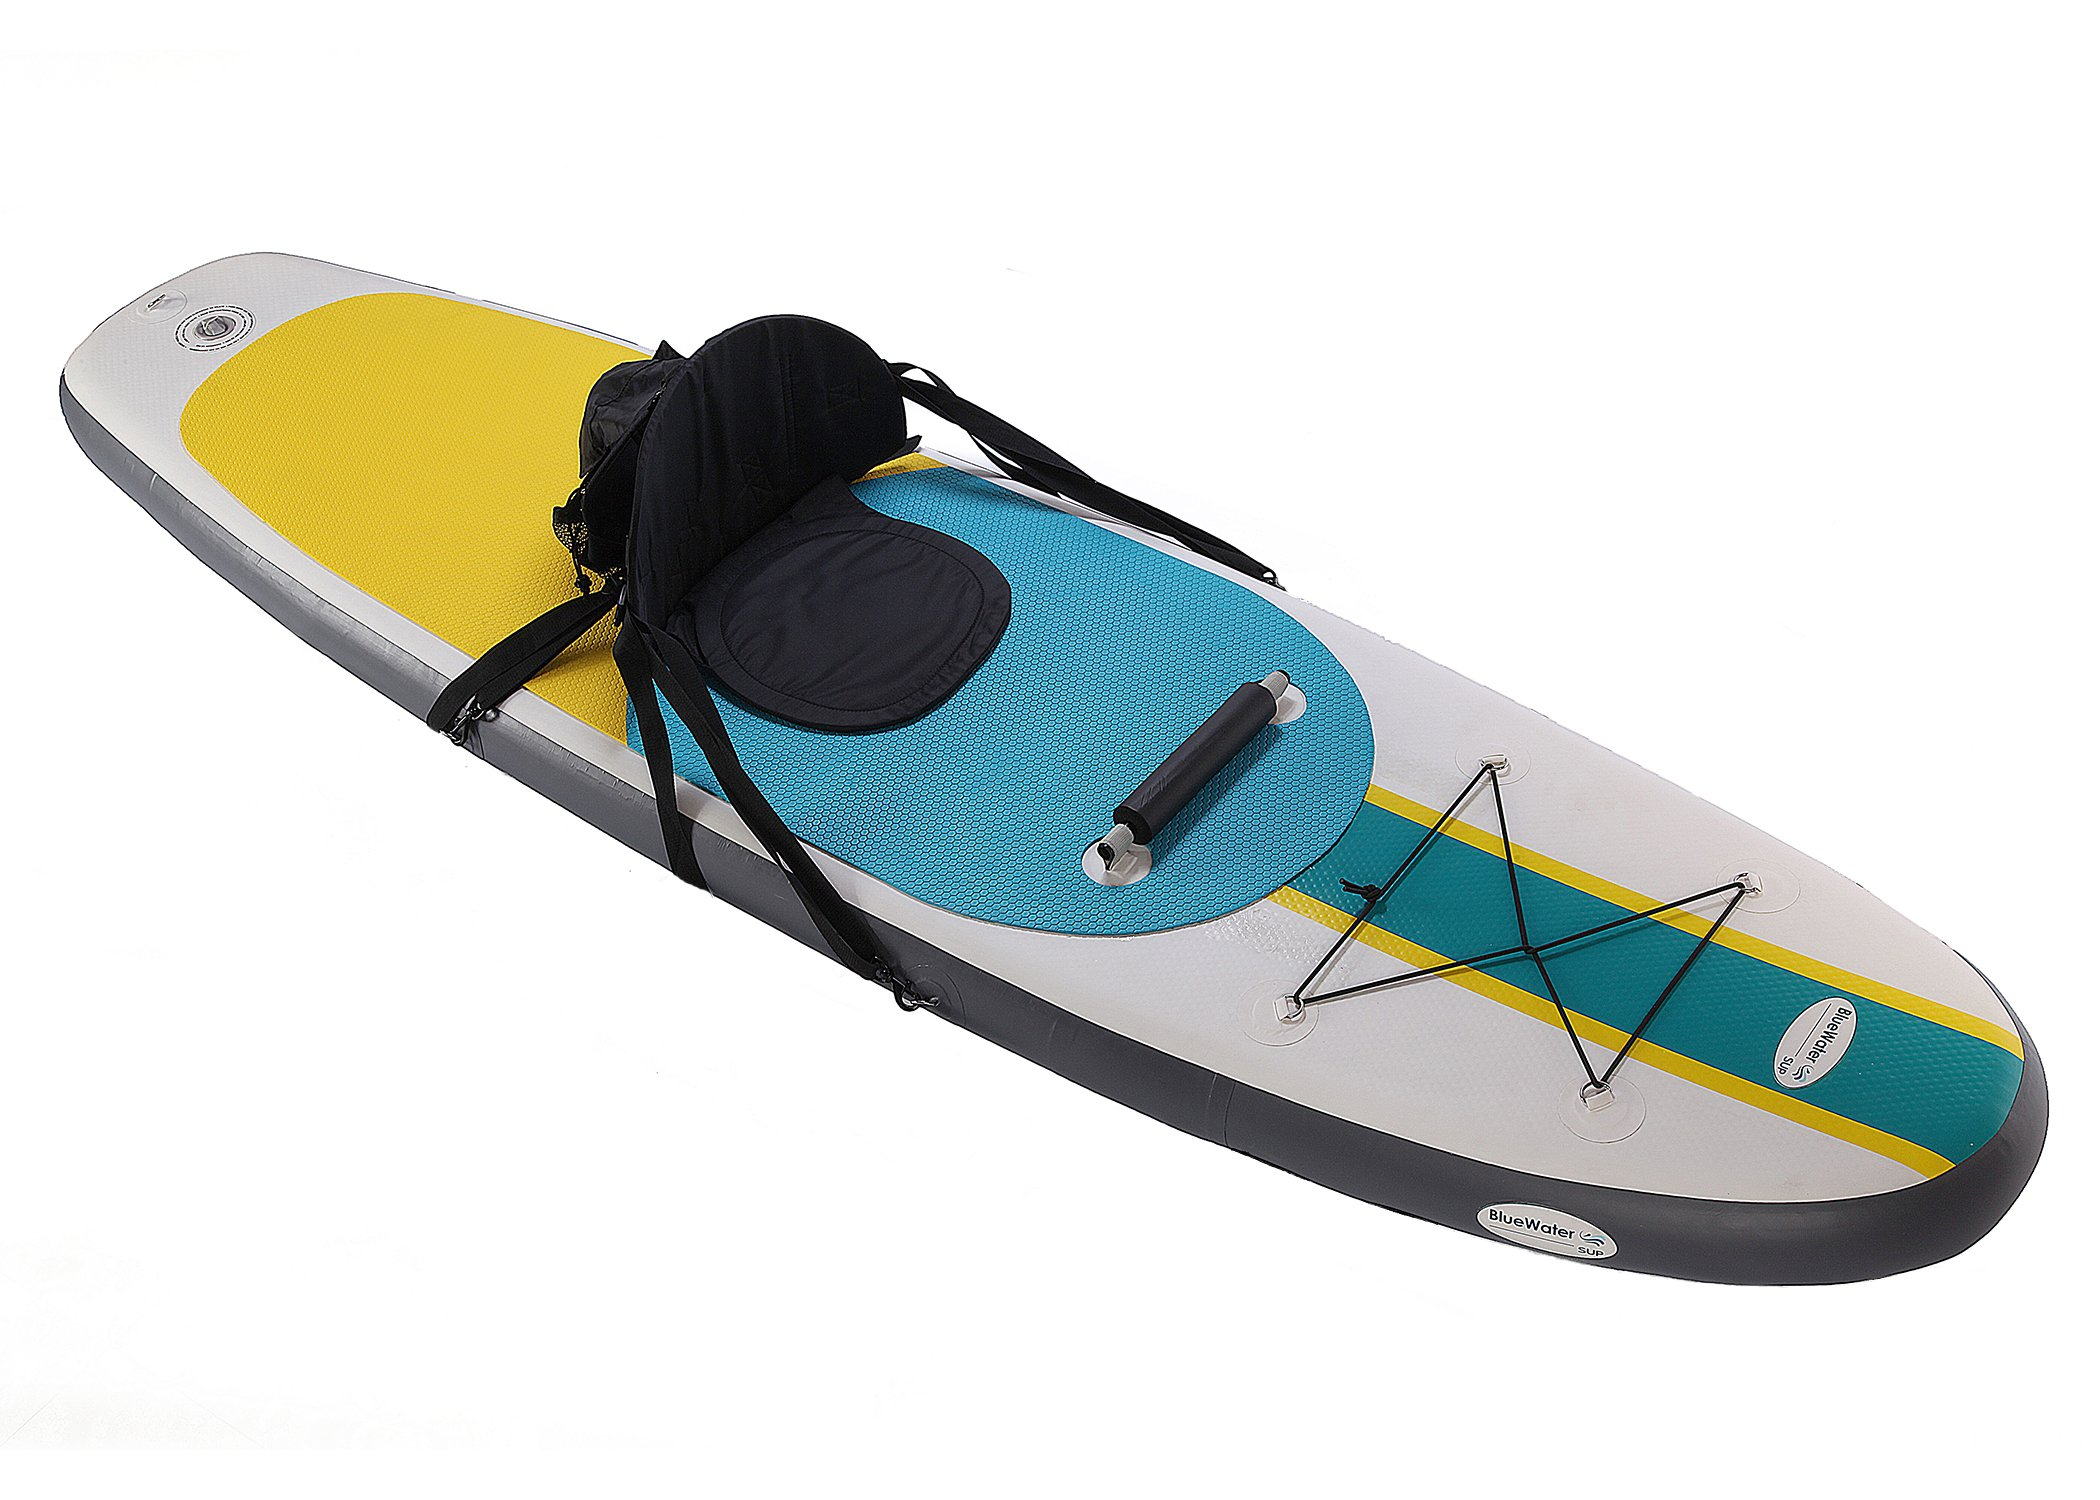 Blue Water Toys BW-COSUP 10326 Inflatable SUP/Kayak, 10' by Blue Water Toys